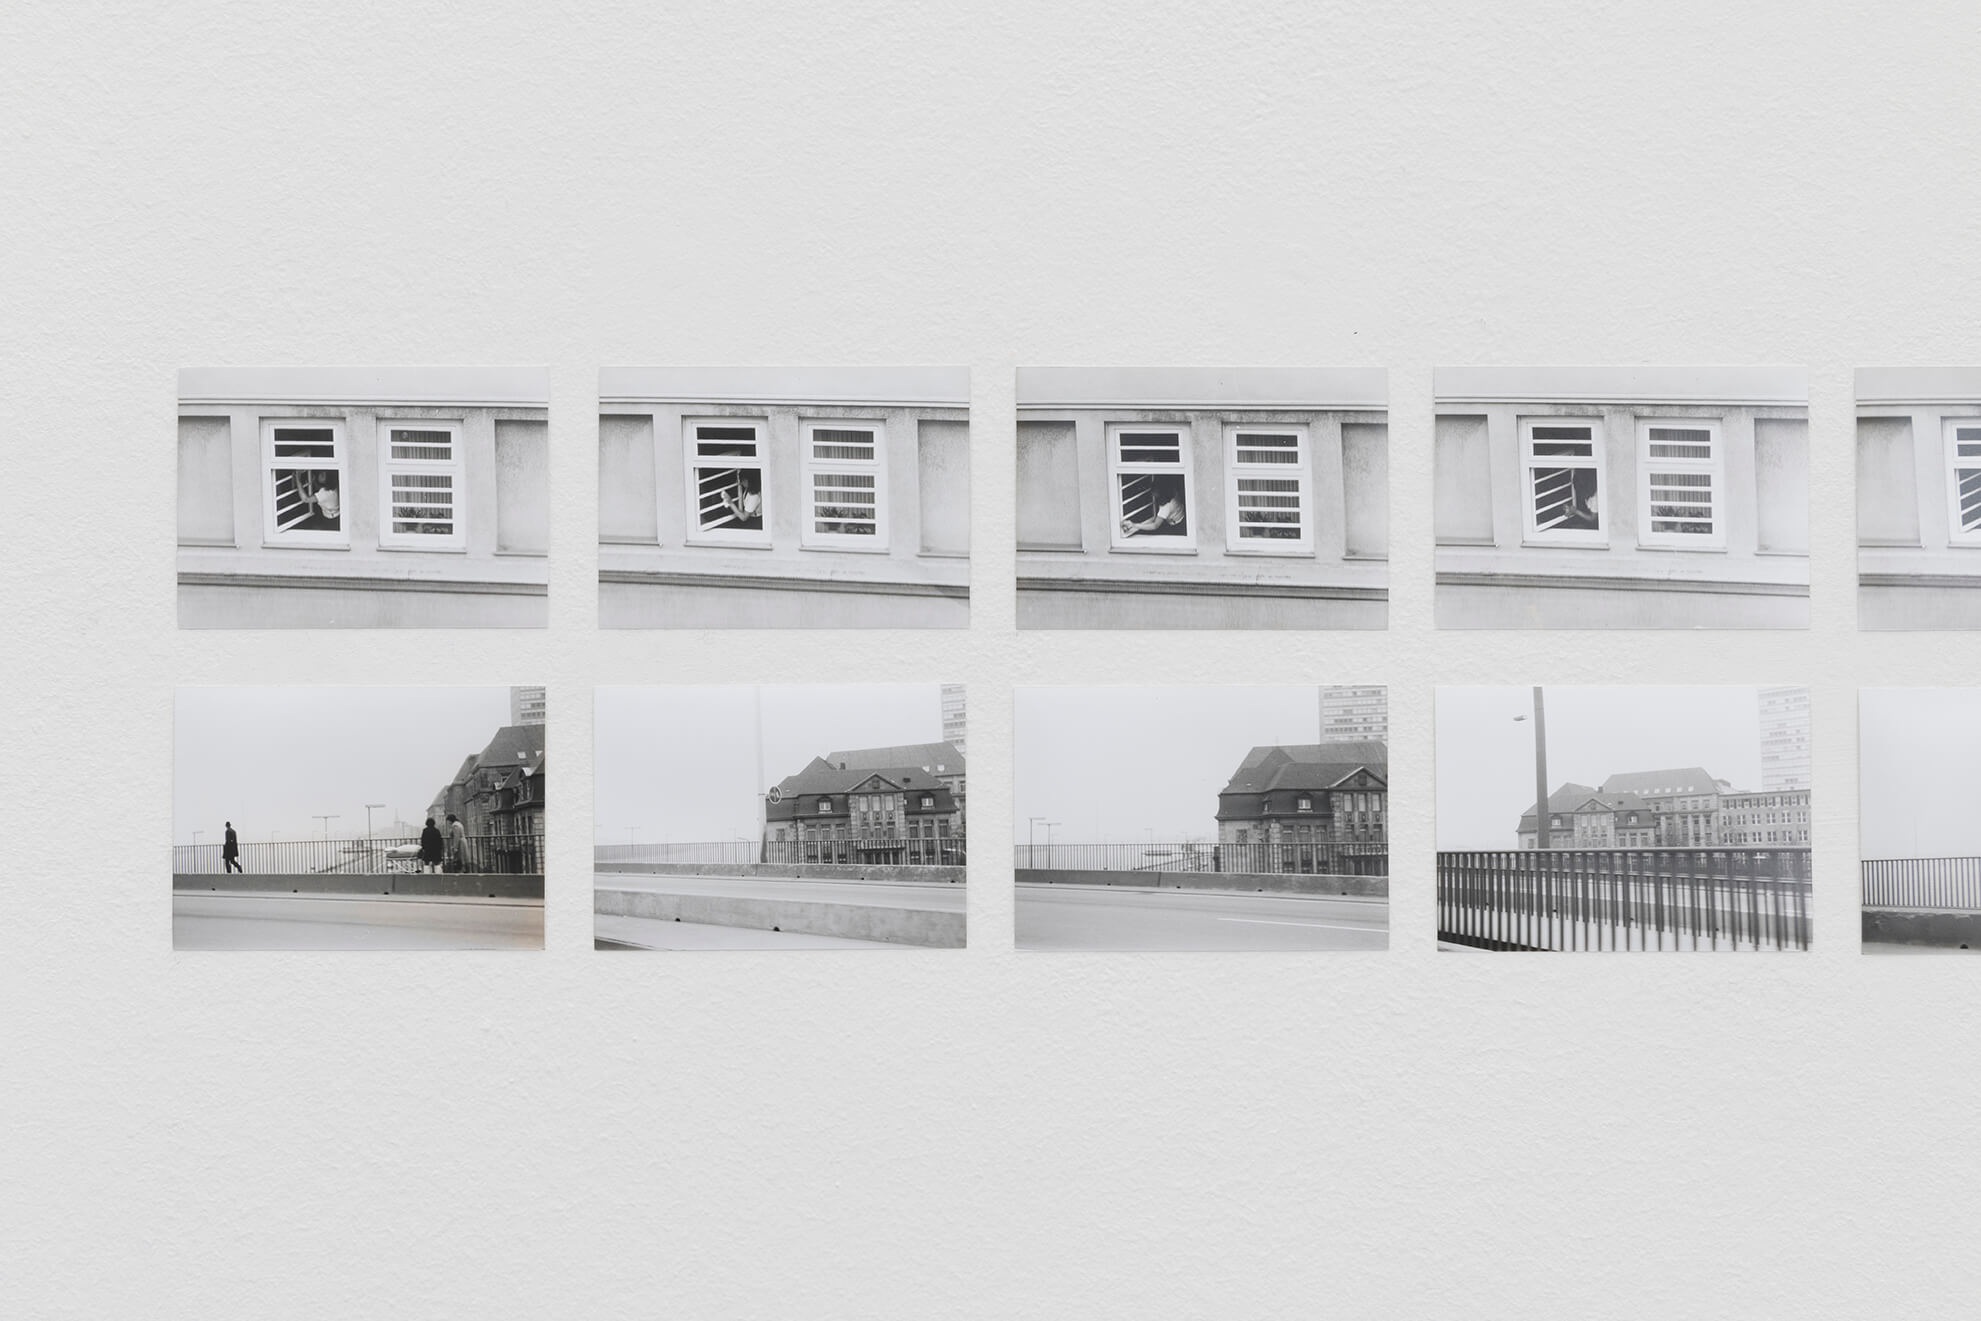 Time Series – Window Cleaner, 1970, Time Series, Bridge, 1970, details | Another Art Exhibition | ProjecteSD